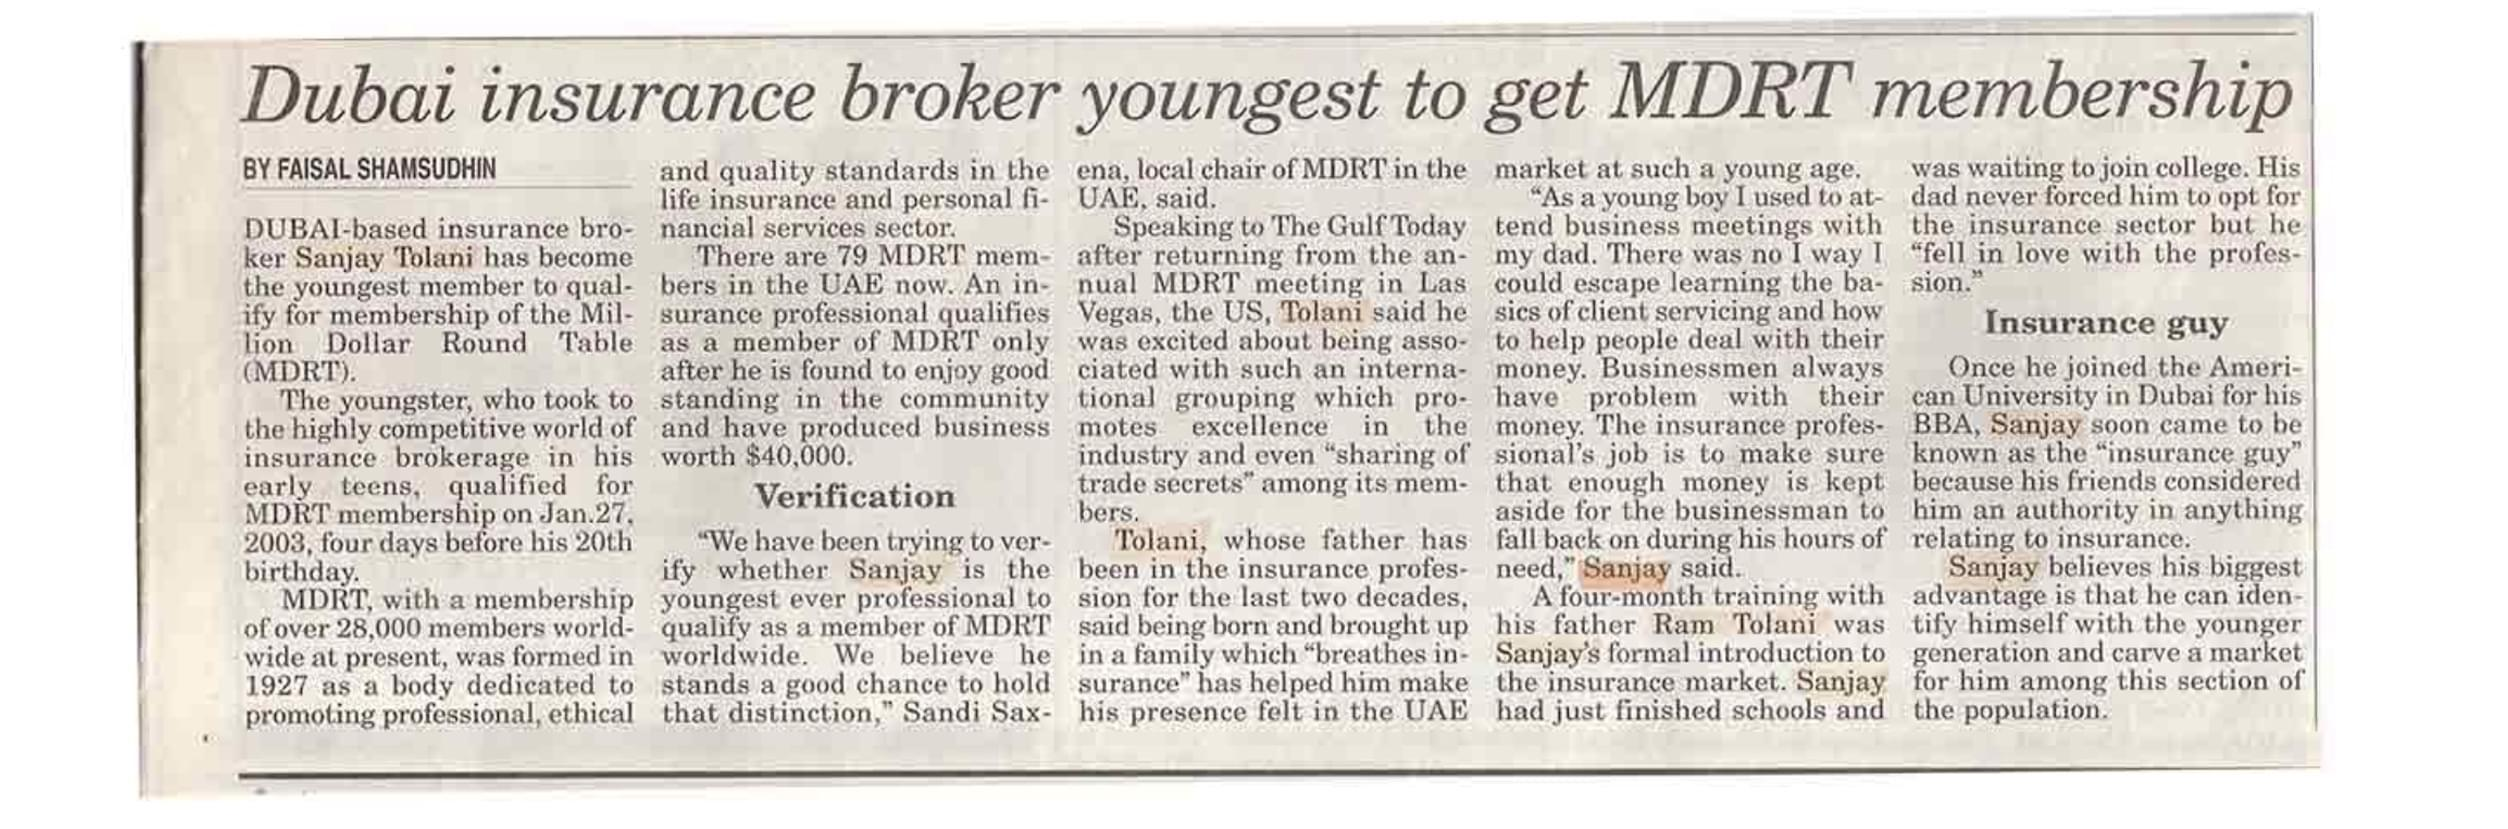 DUBAI INSURANCE BROKER YOUNGEST TO GET MDRT MEMBERSHIP